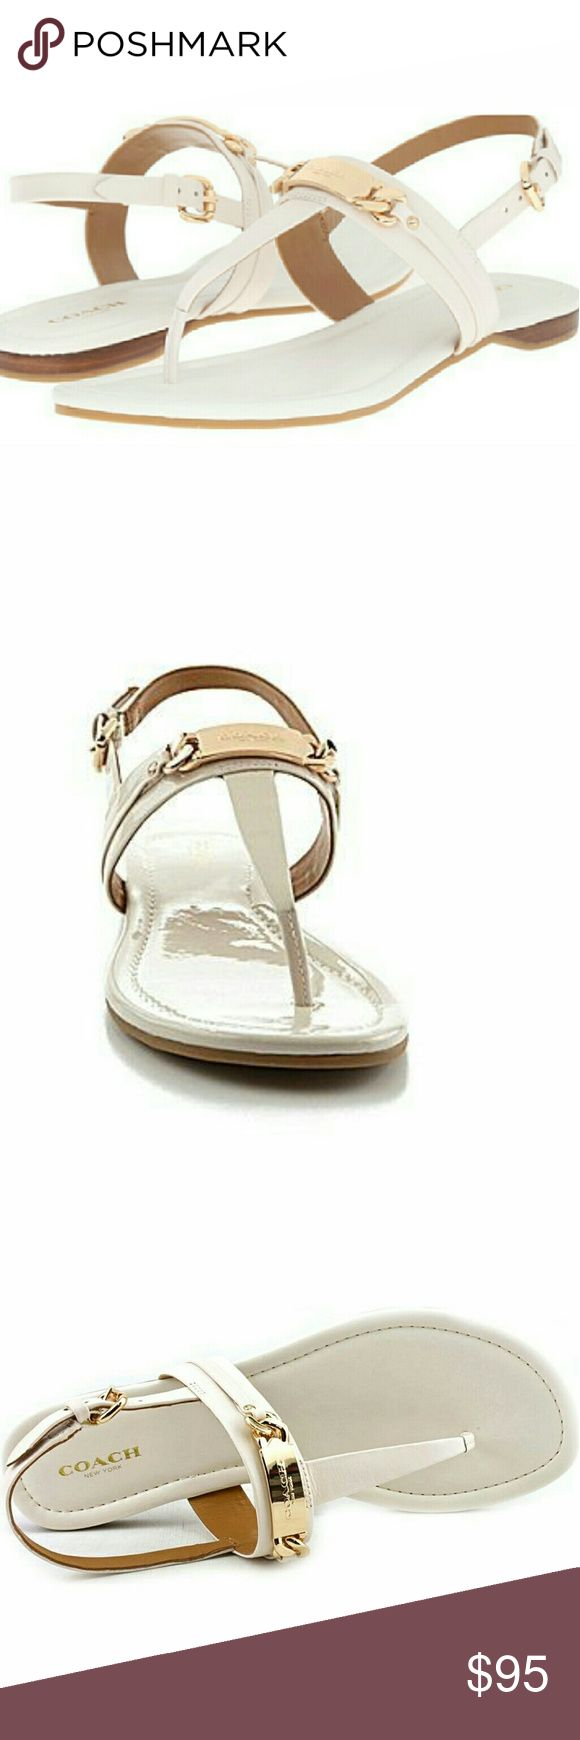 NWOB COACH | Caterine Sandals Bright signature hardware accents the simple shape of a minimalist sandal with the look of lacquer. It's refined design is finished with smooth leather linings and a lightly padded insole.   * Style: Caterine #A7799 * Color: Chalk (looks cream/off-white) * Upper: patent leather * Rubber covered leather sole * Gold-toned hardware with chain link detail * Thong style front with buckle * Brand new, no box included  Reasonable offers always considered. Over 175…